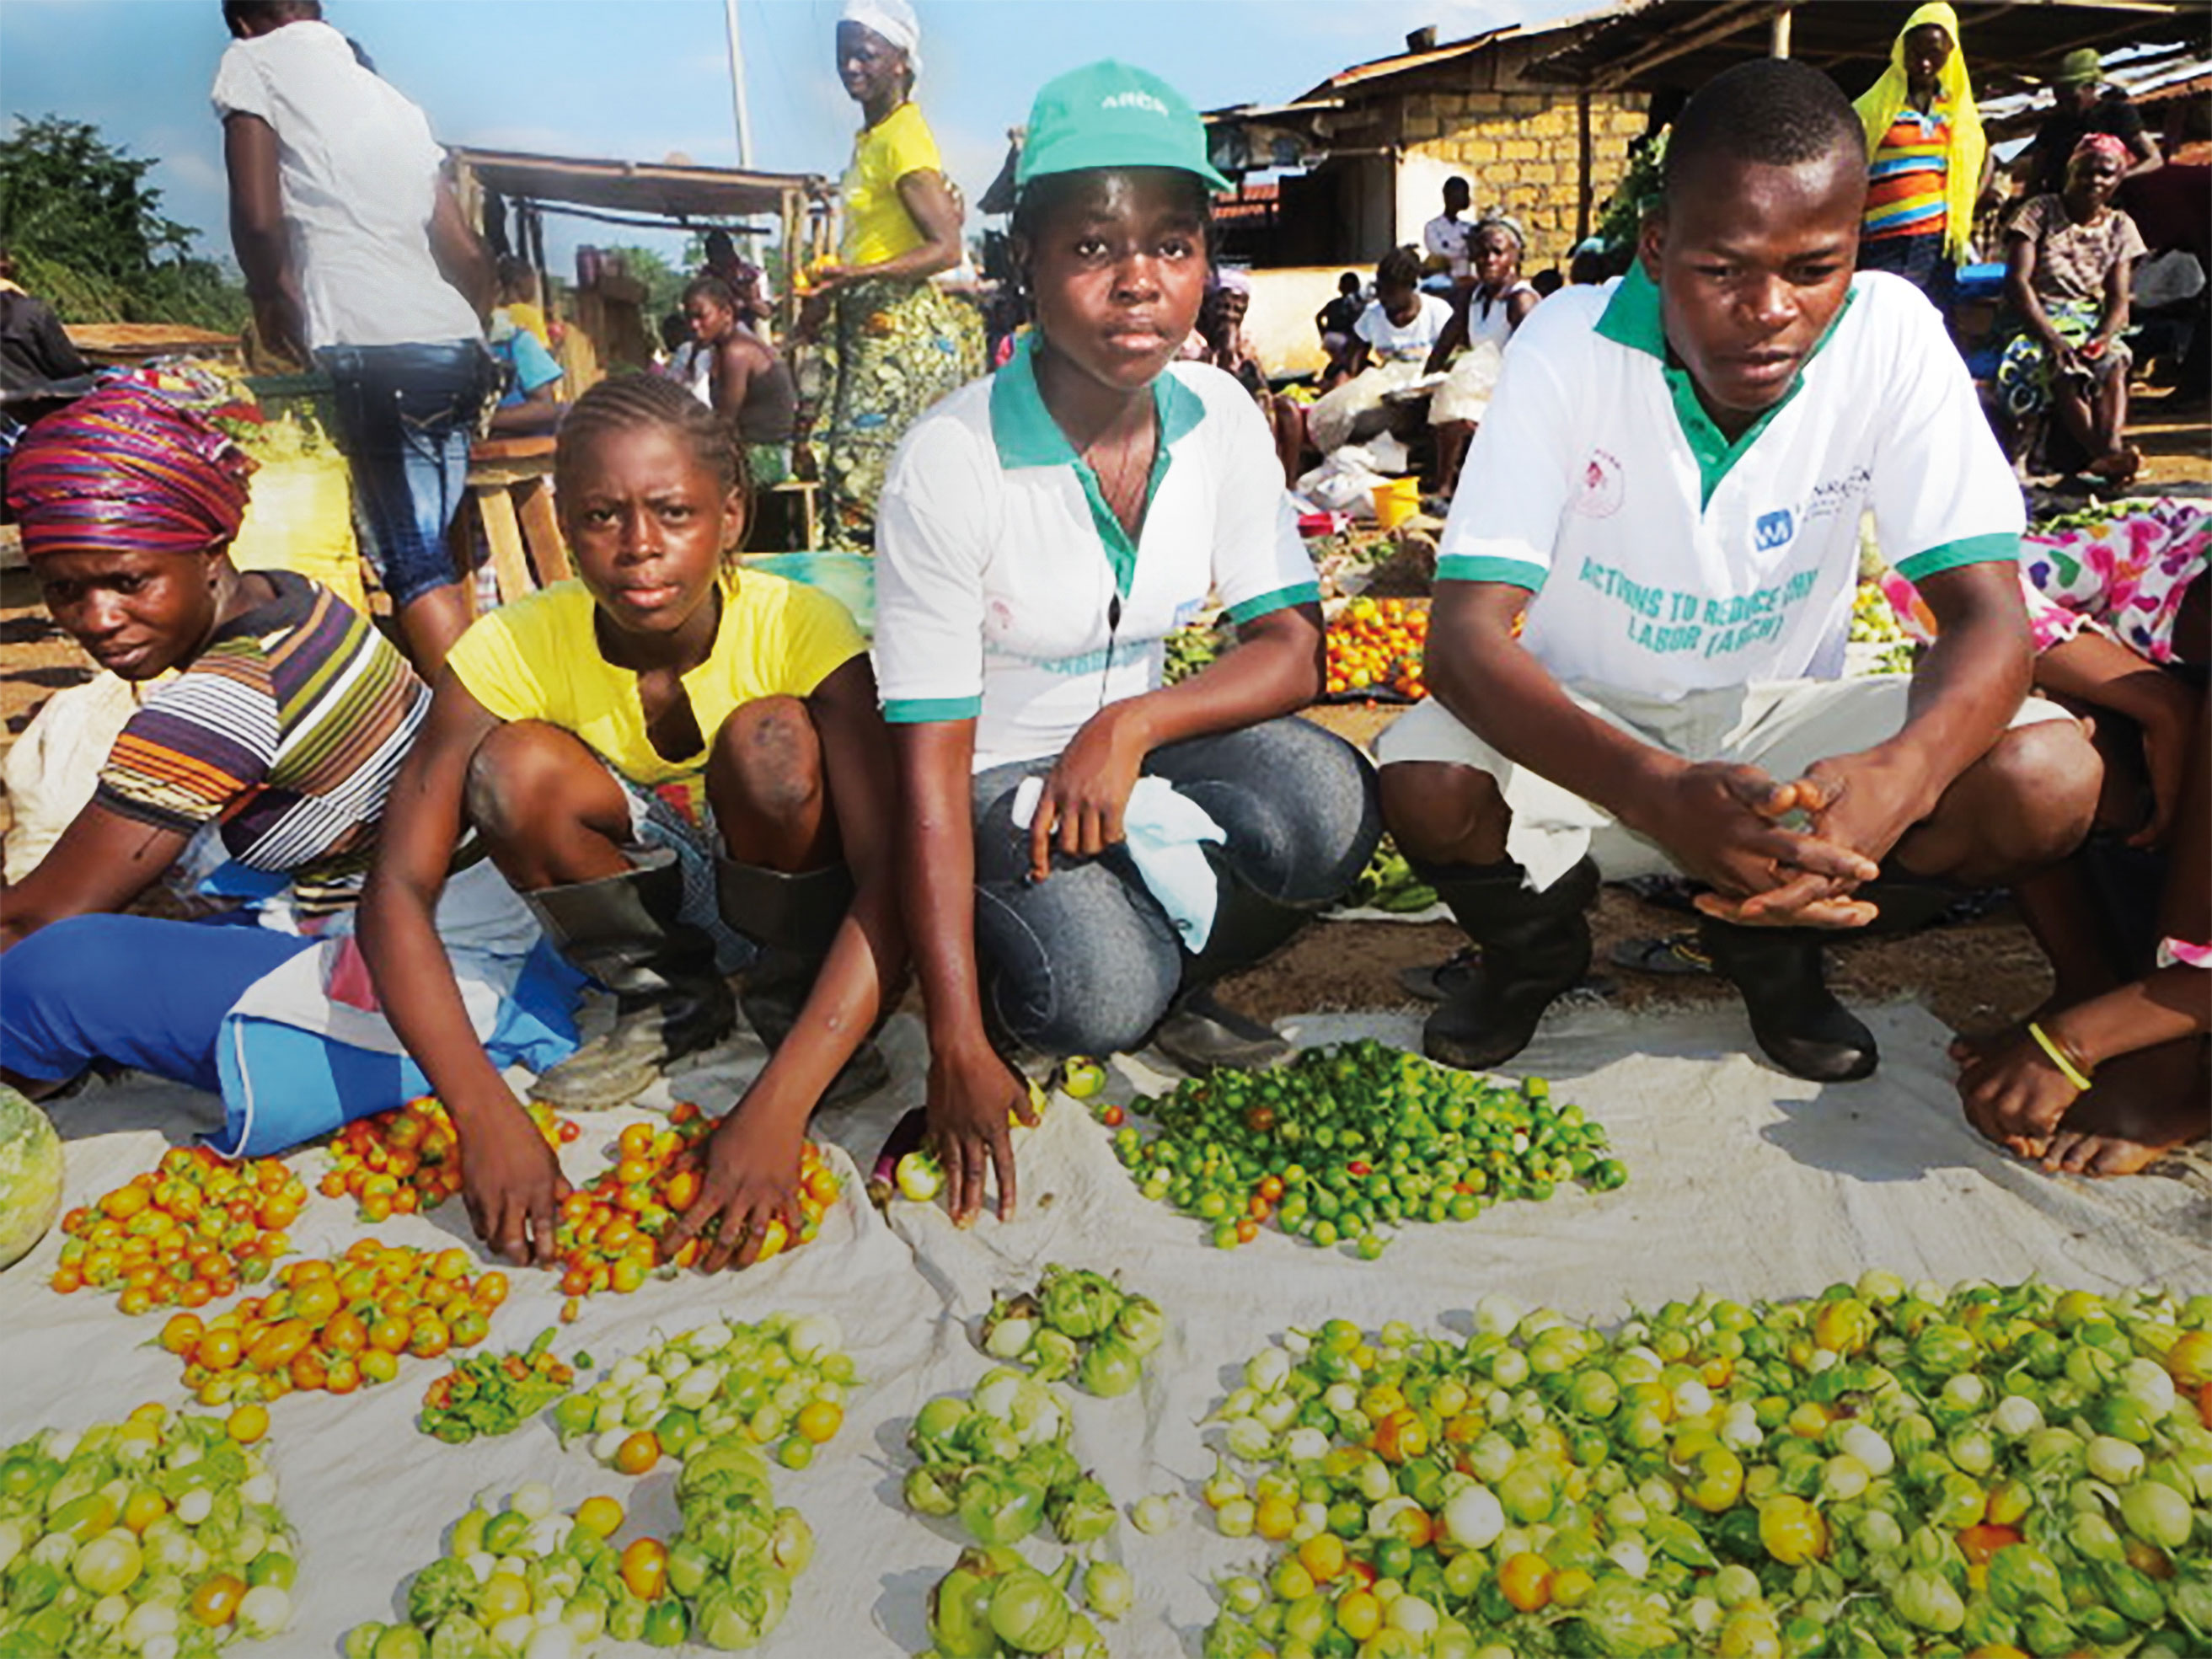 Mercy Dahn, second from right, and other students display their produce at a local market in Karnwee, Liberia.